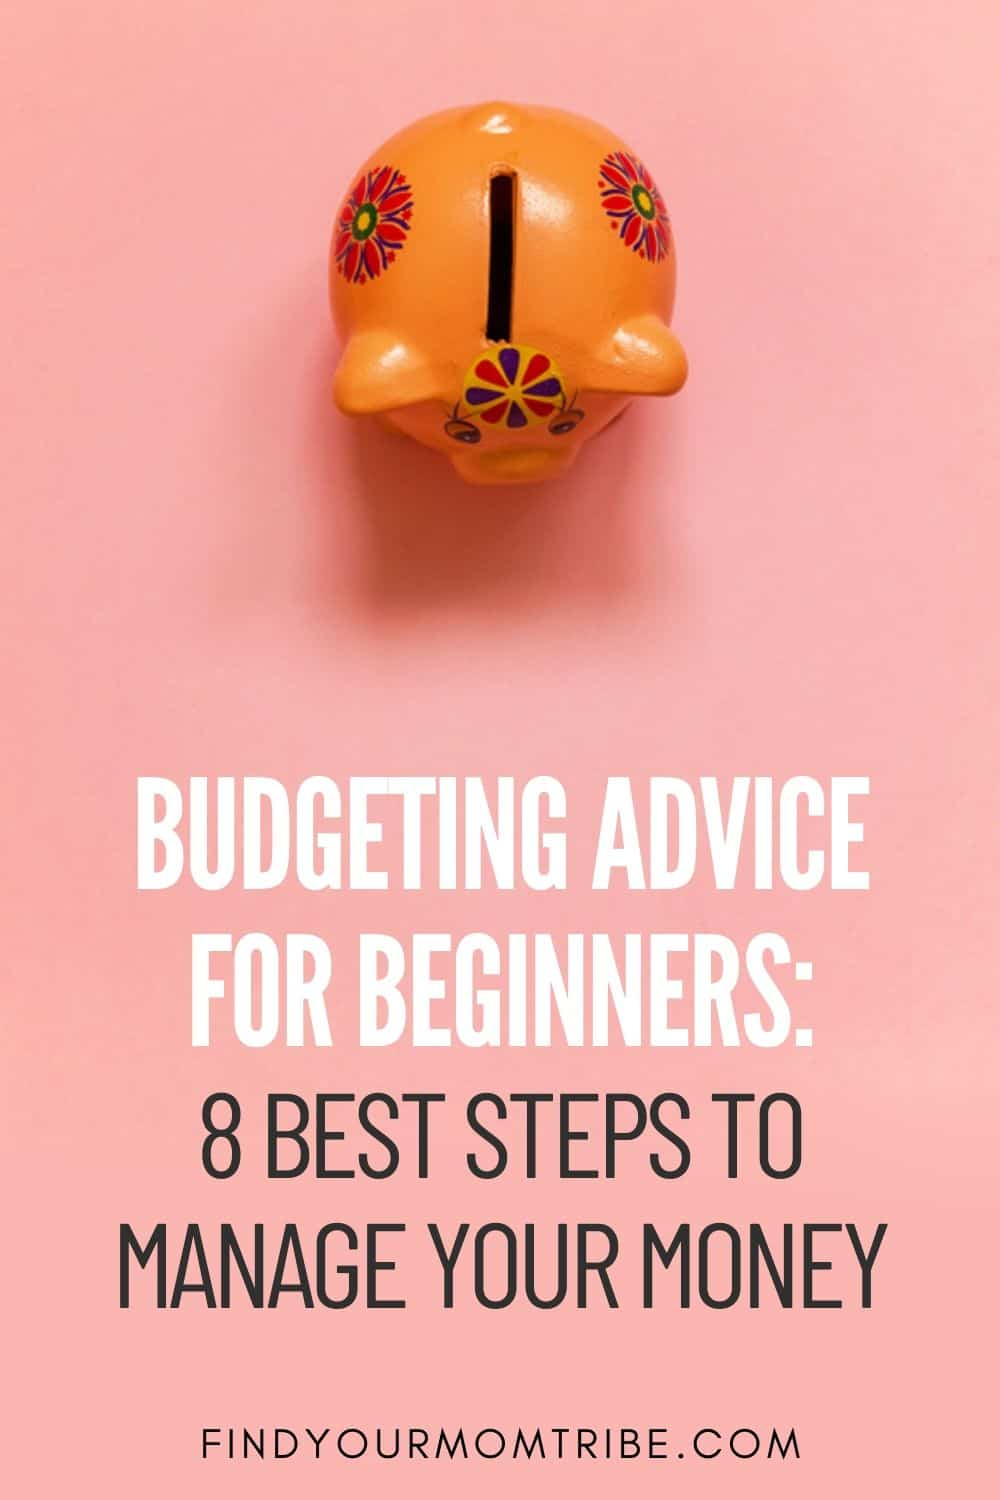 Budgeting Advice For Beginners_ 8 Best Steps To Manage Your Money Pinterest